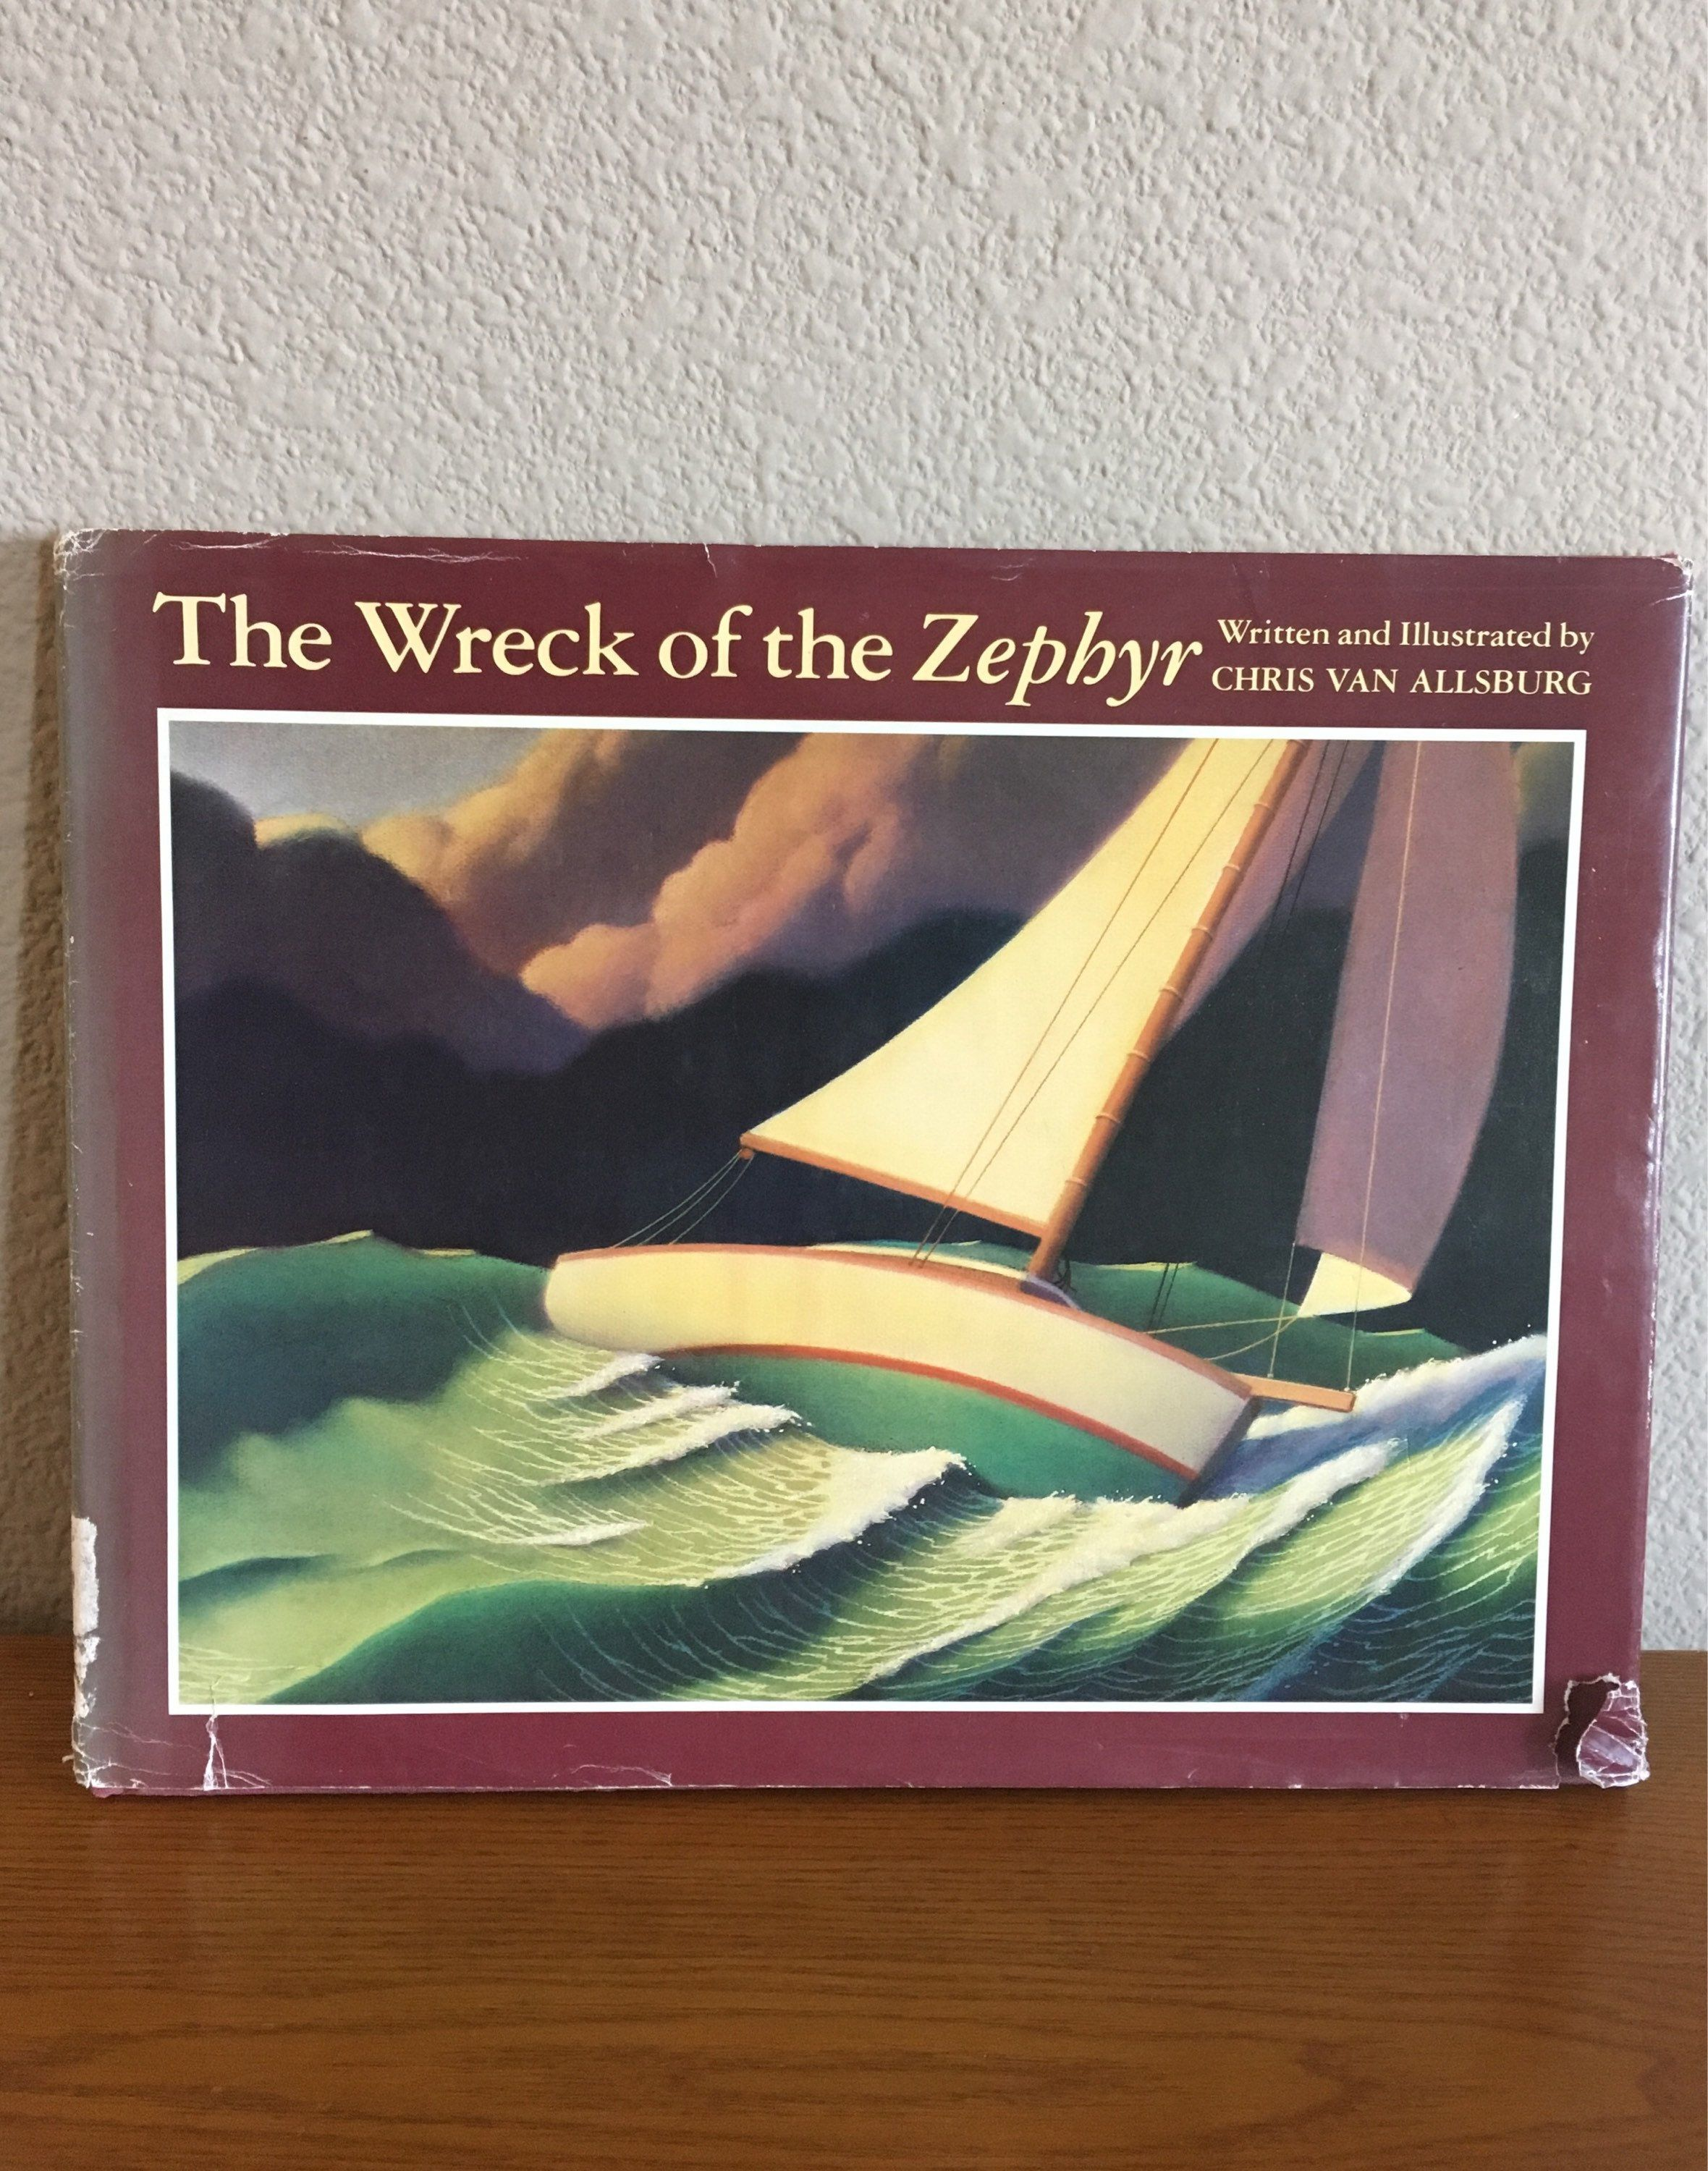 First Edition Copy Of The Wreck Of The Zephyr By Chris